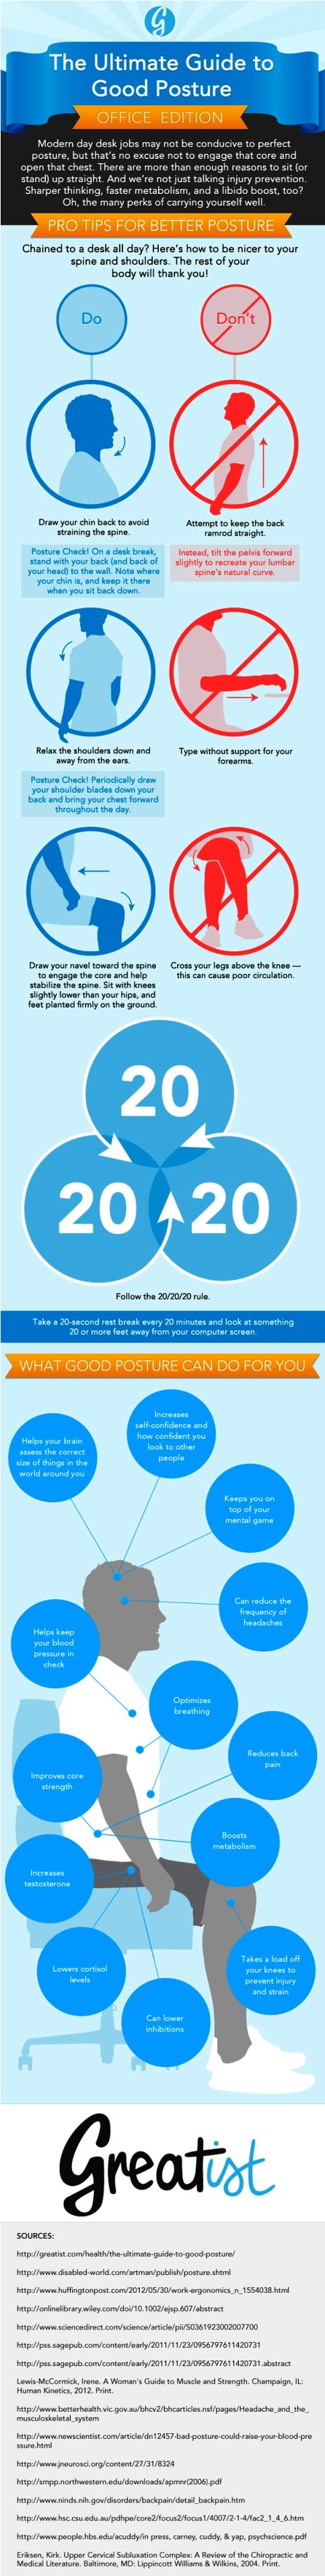 The Ultimate Guide to Good Posture: Office Edition #infographic